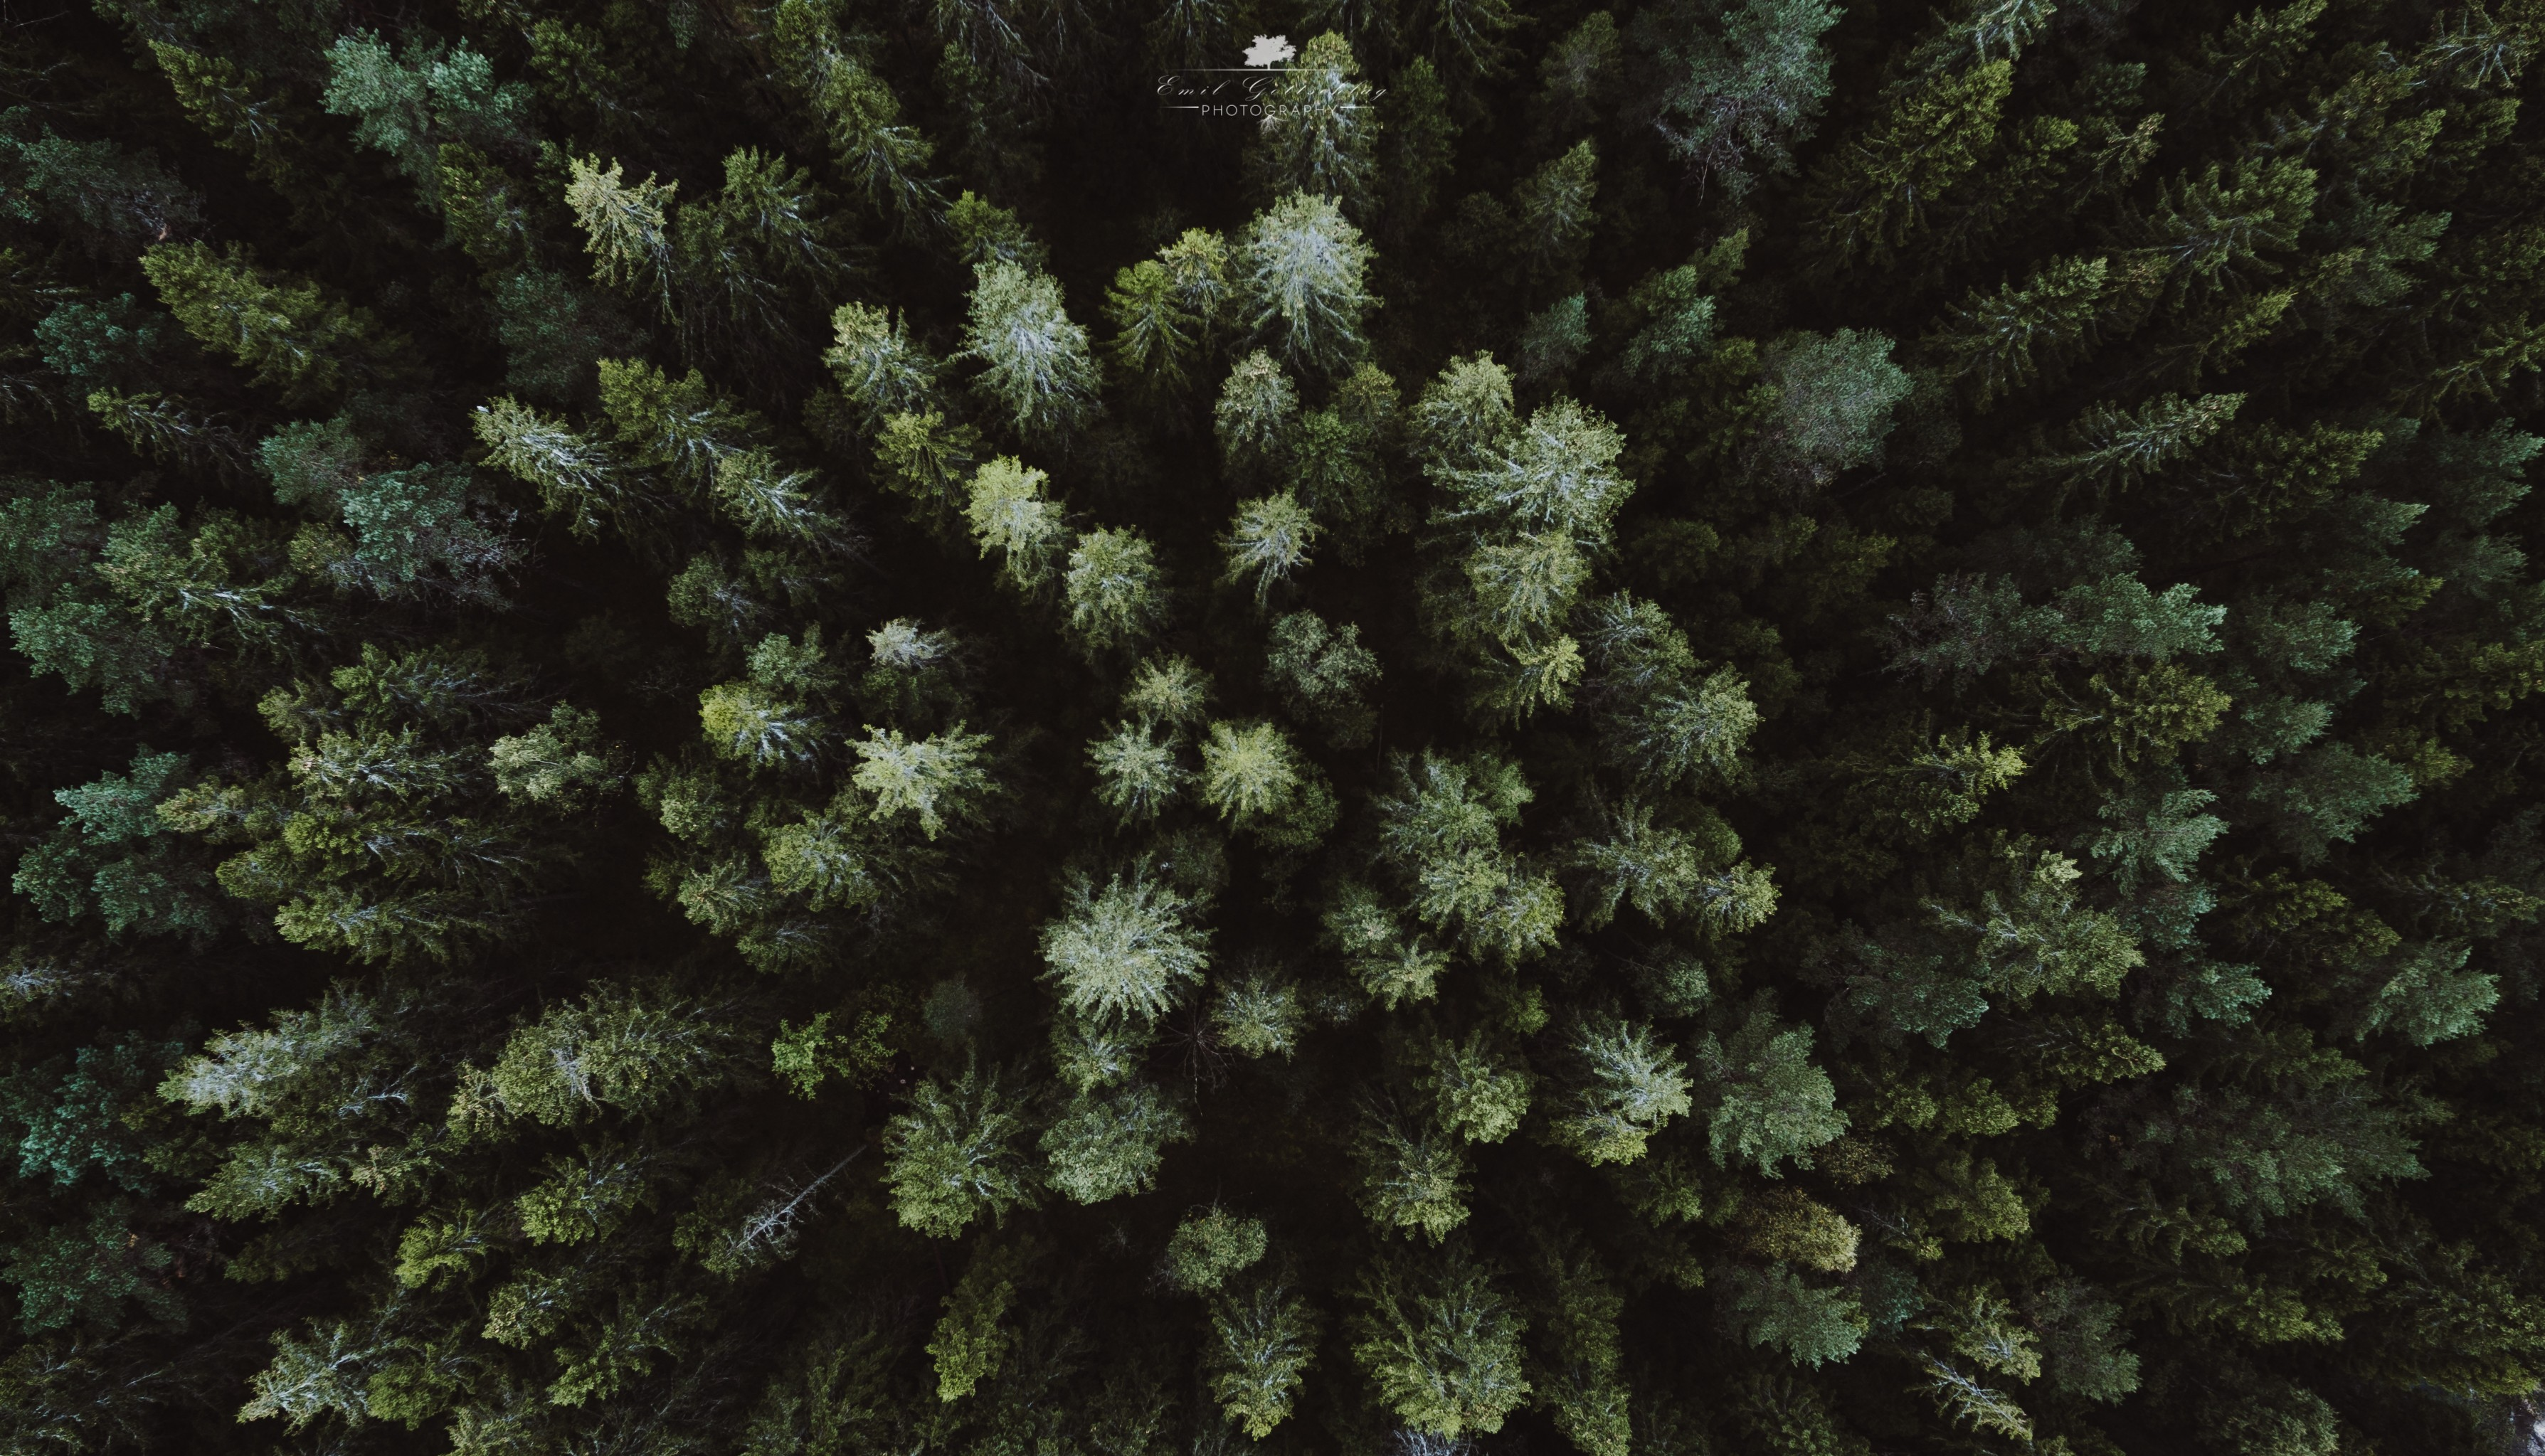 #landscape, #drone, #forest, #aerial View, Wallpaper - Drone View Of Forest , HD Wallpaper & Backgrounds